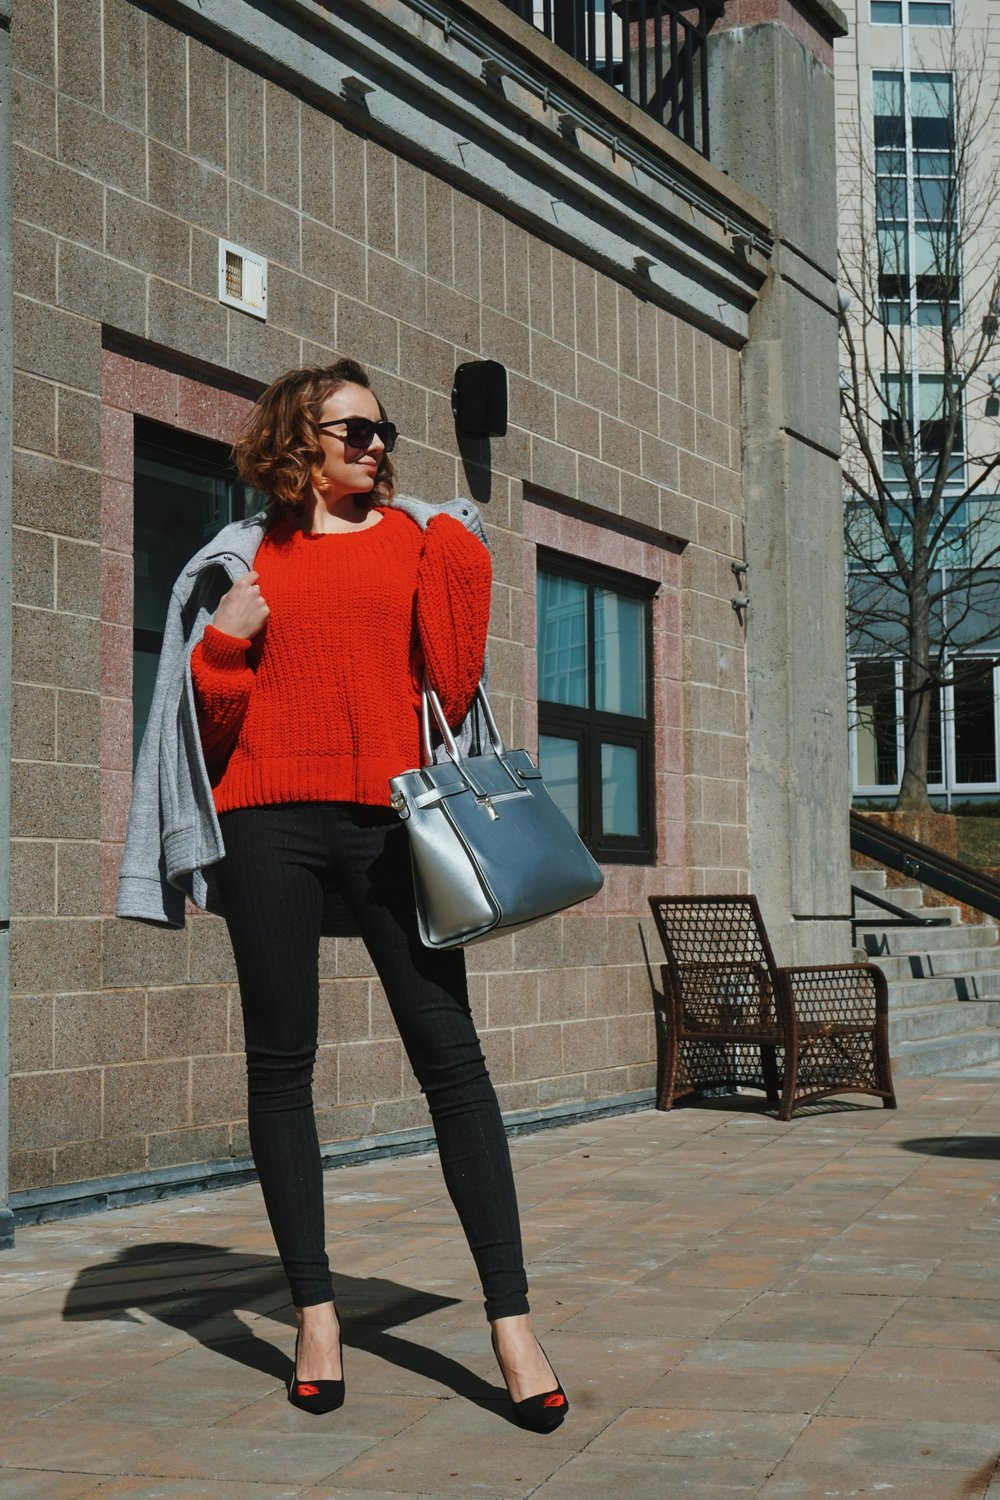 Blogger posing by a wall, wearing a red H&M sweater, light gray coat, dark gray pants, black heels, and a silver bag.